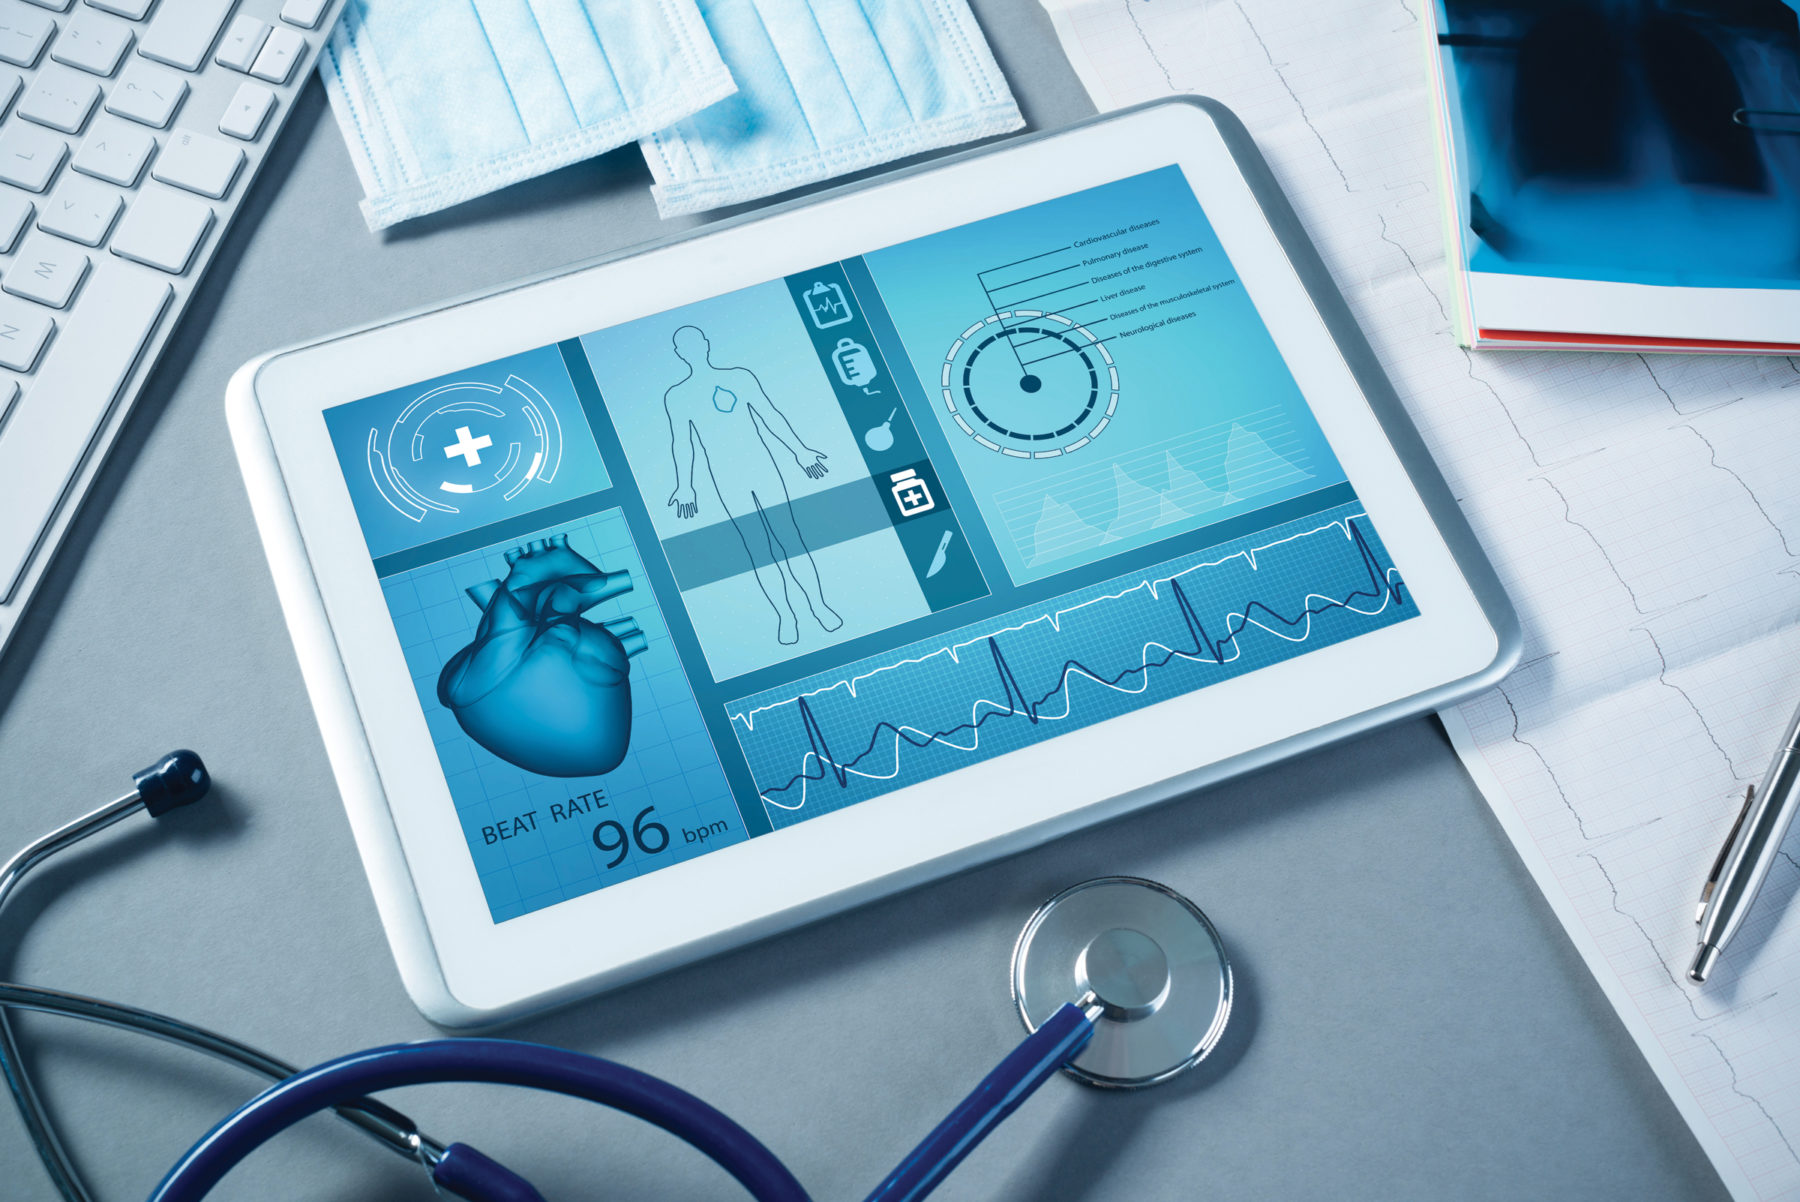 Healthcare Information Software Market to enjoy \'explosive growth\' to 2025 | GE, Siemens, 3M, McKesson